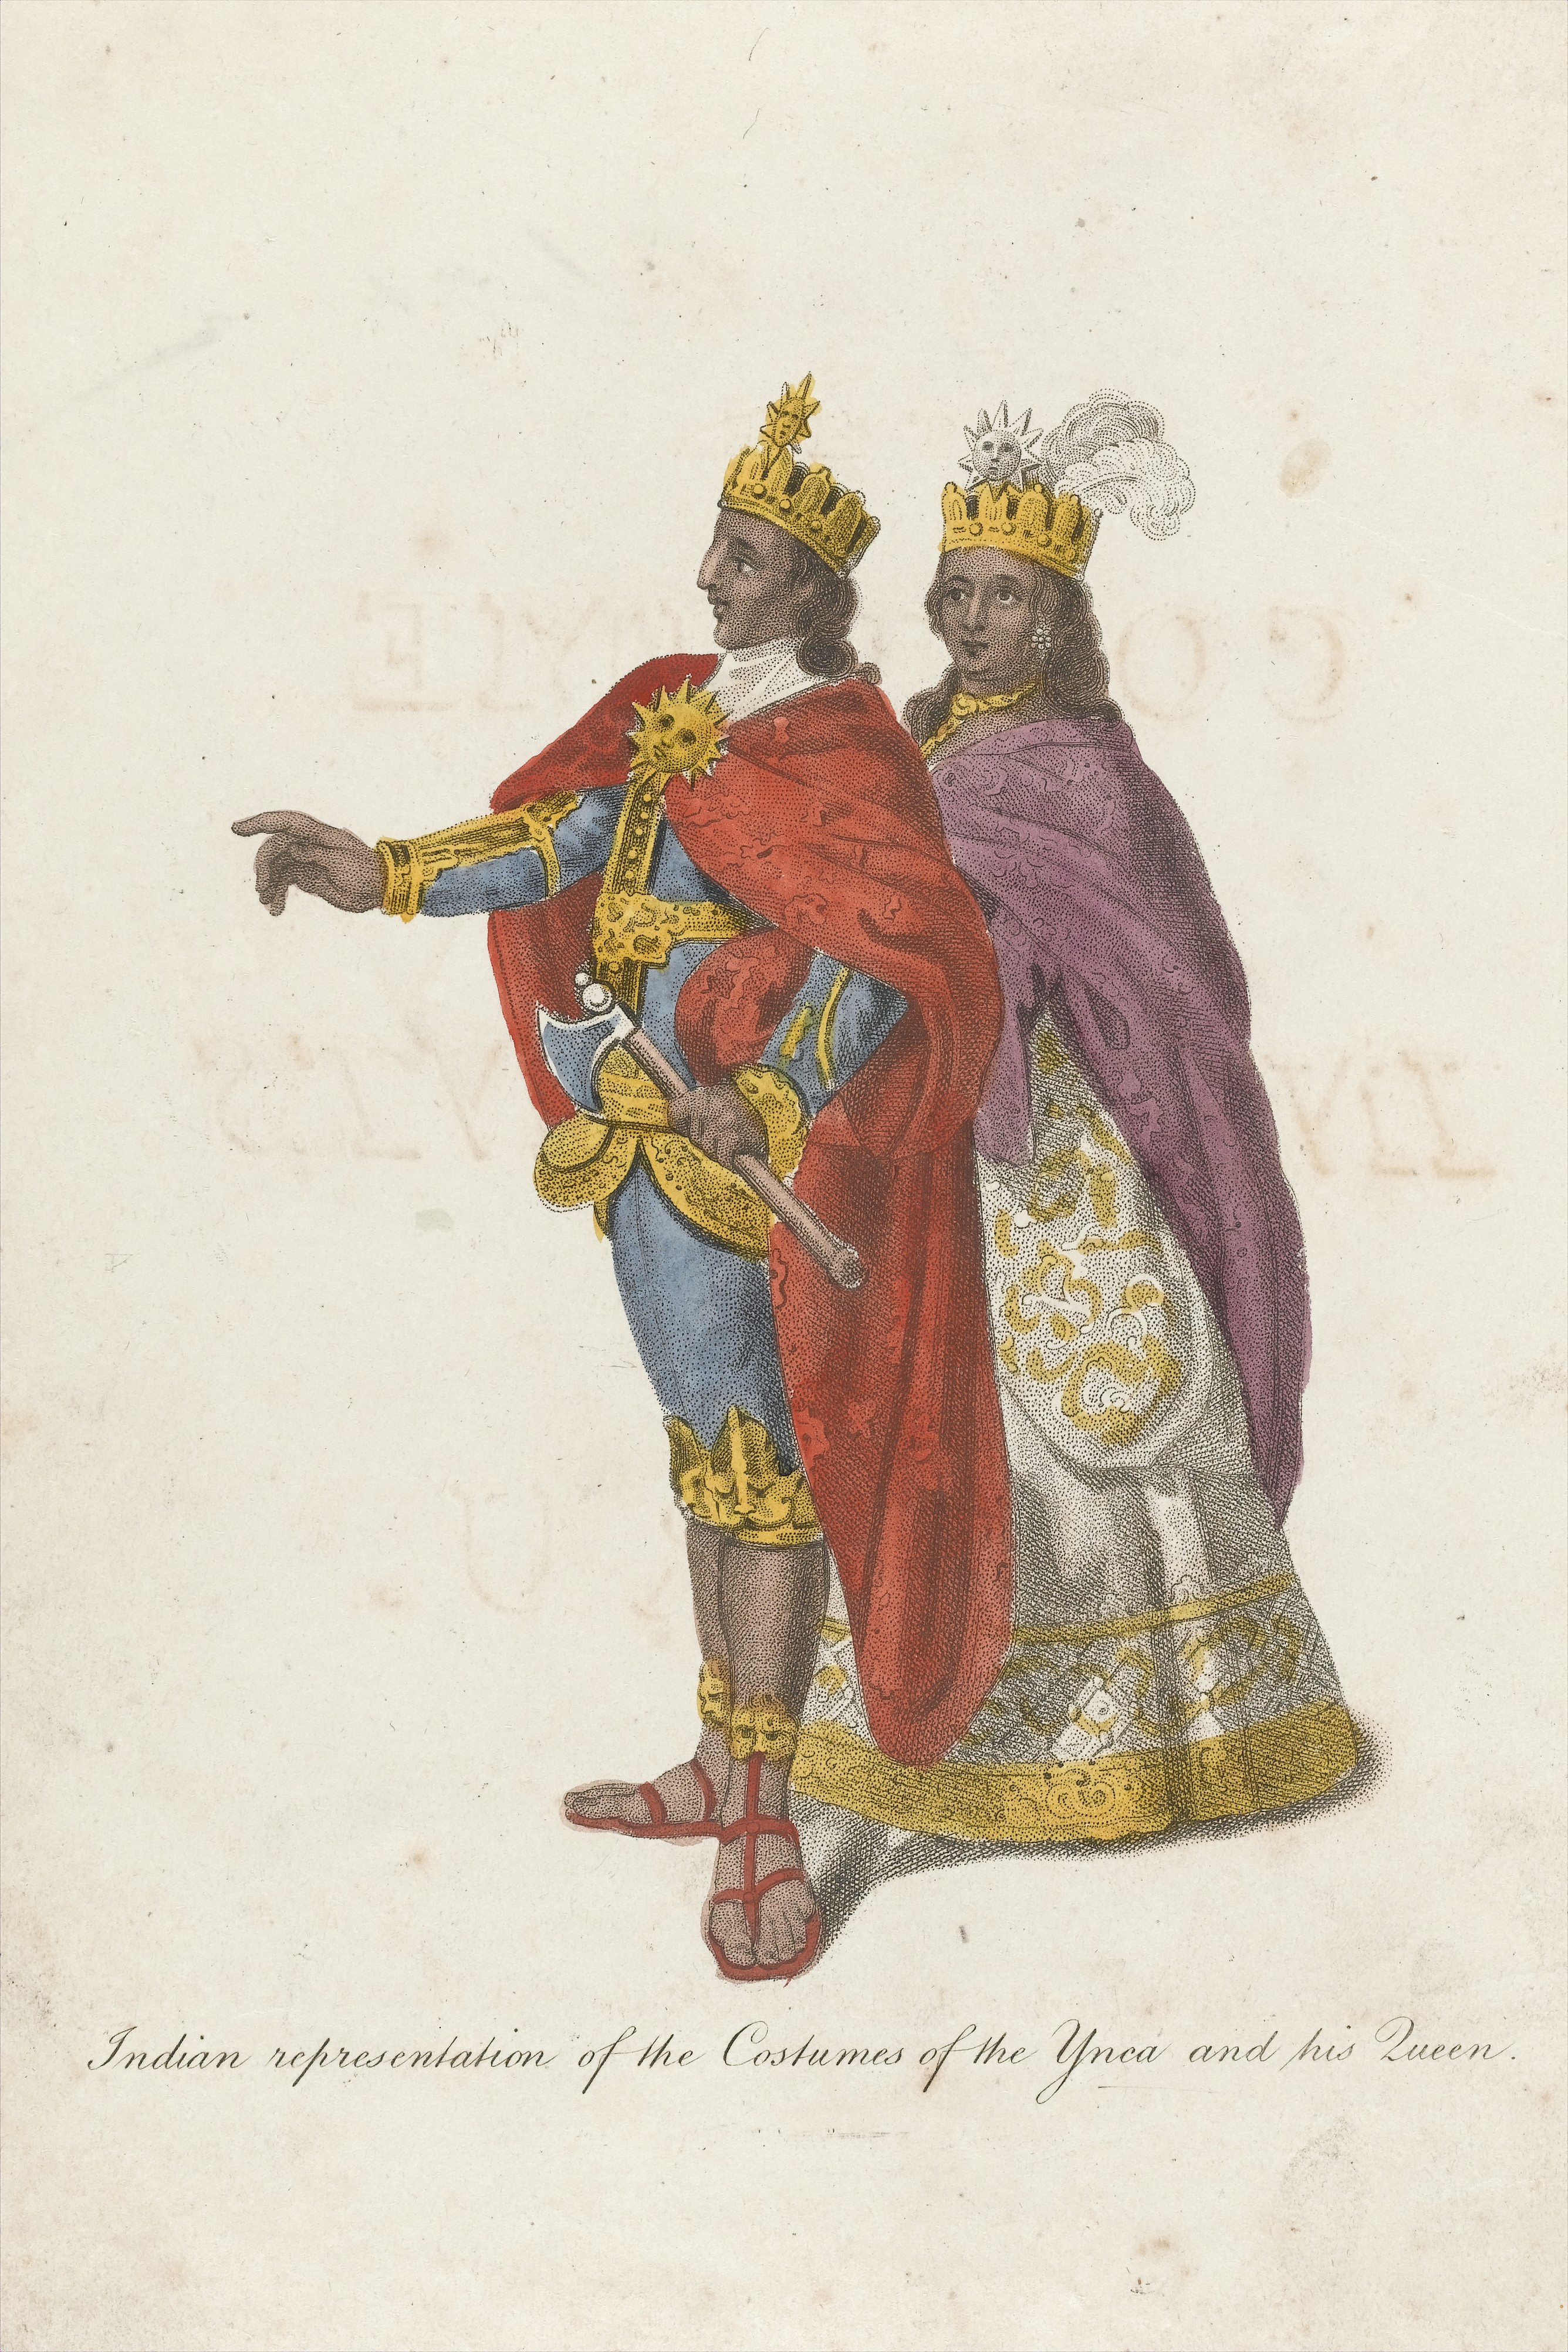 FileRrepresentations of the costumes of the Inca and his Queen Wellcome L0042046